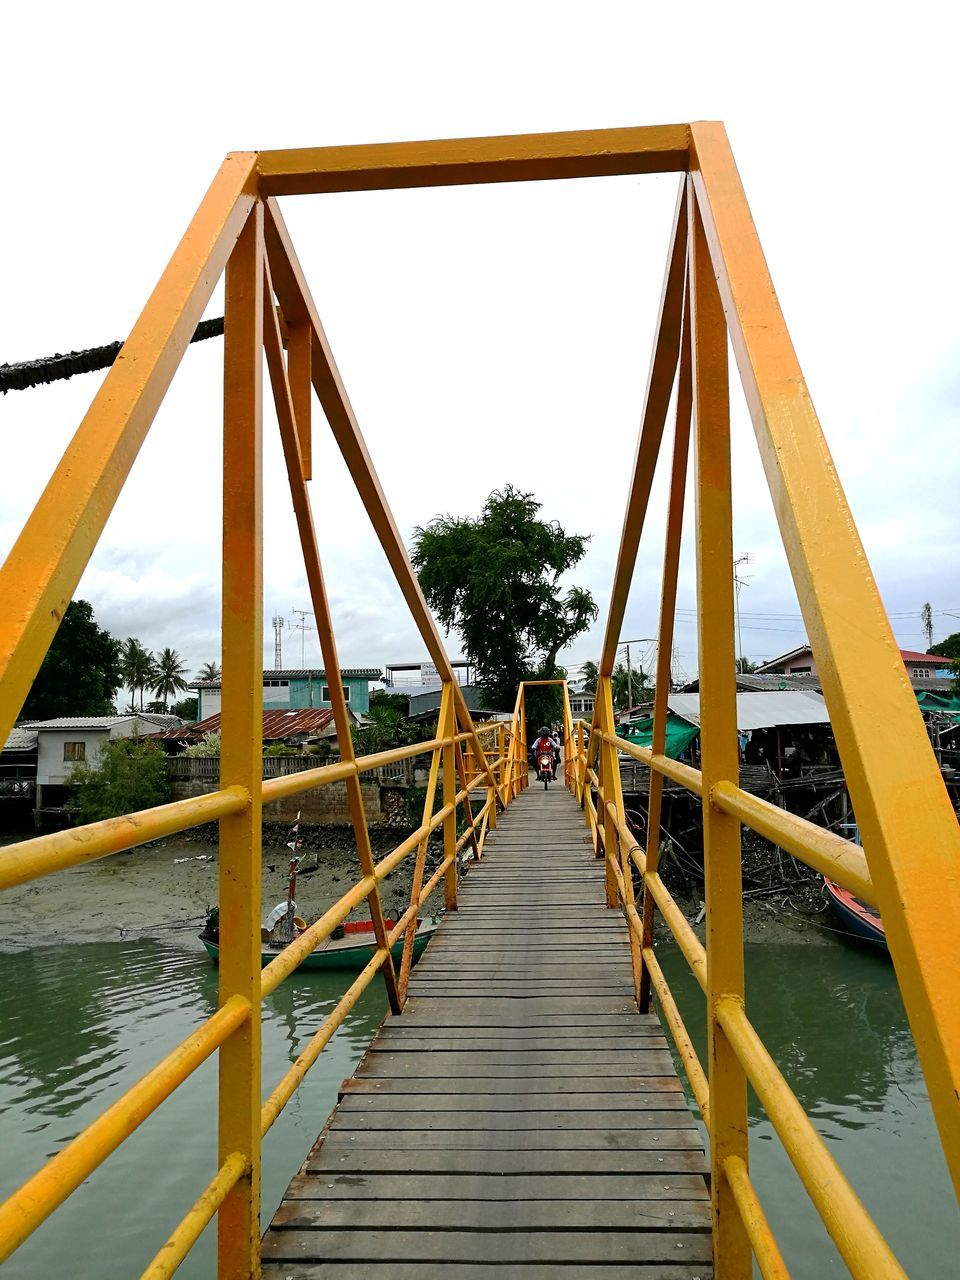 childhood, real people, built structure, leisure activity, two people, rear view, men, day, full length, bridge - man made structure, outdoors, lifestyles, sky, togetherness, outdoor play equipment, tree, playing, architecture, water, nature, adult, people